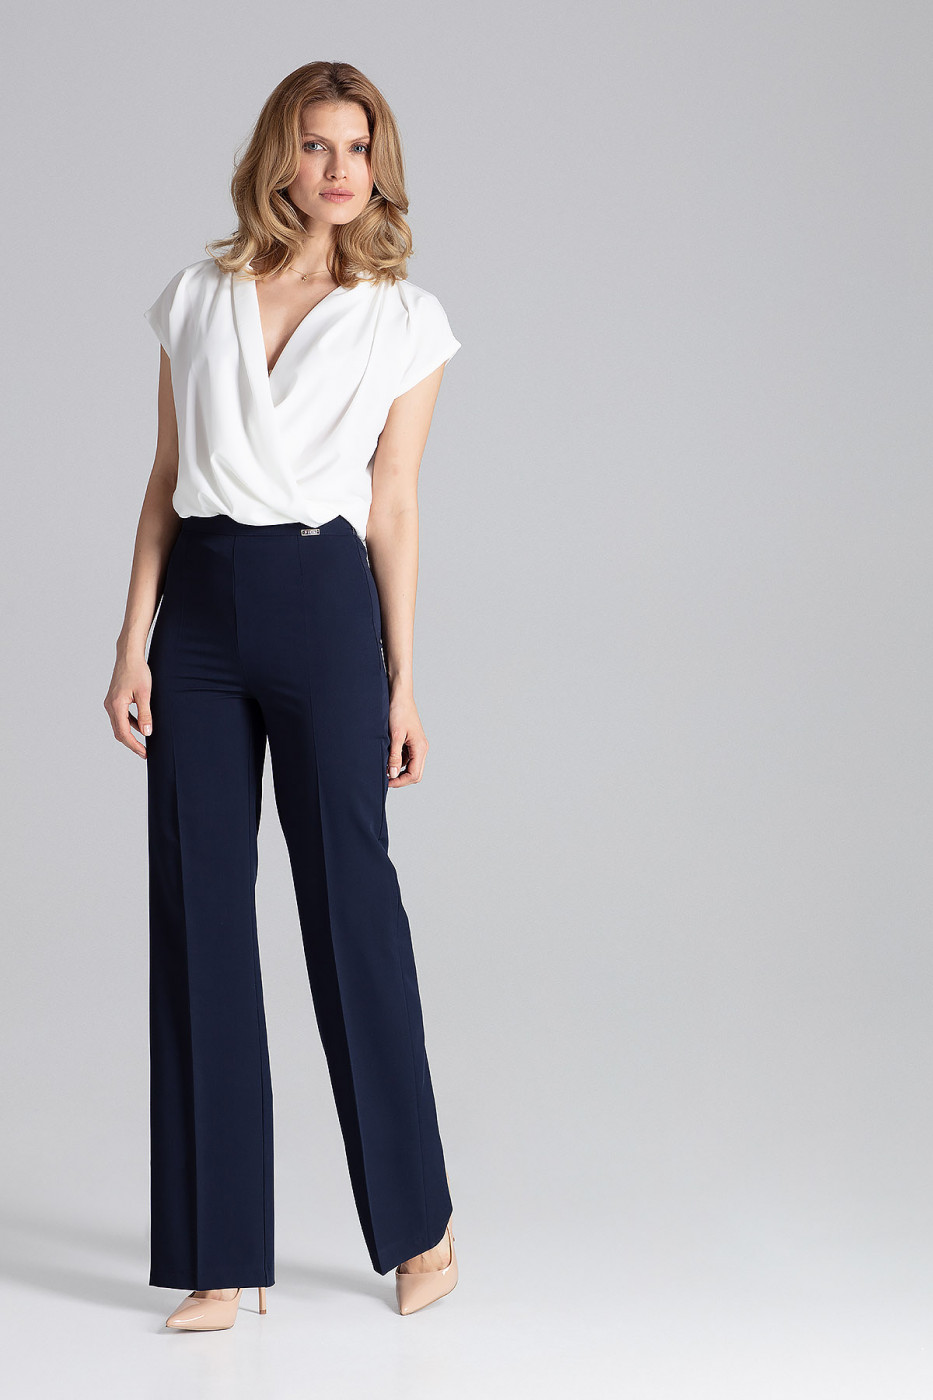 Figl Woman's Pants M657 Navy